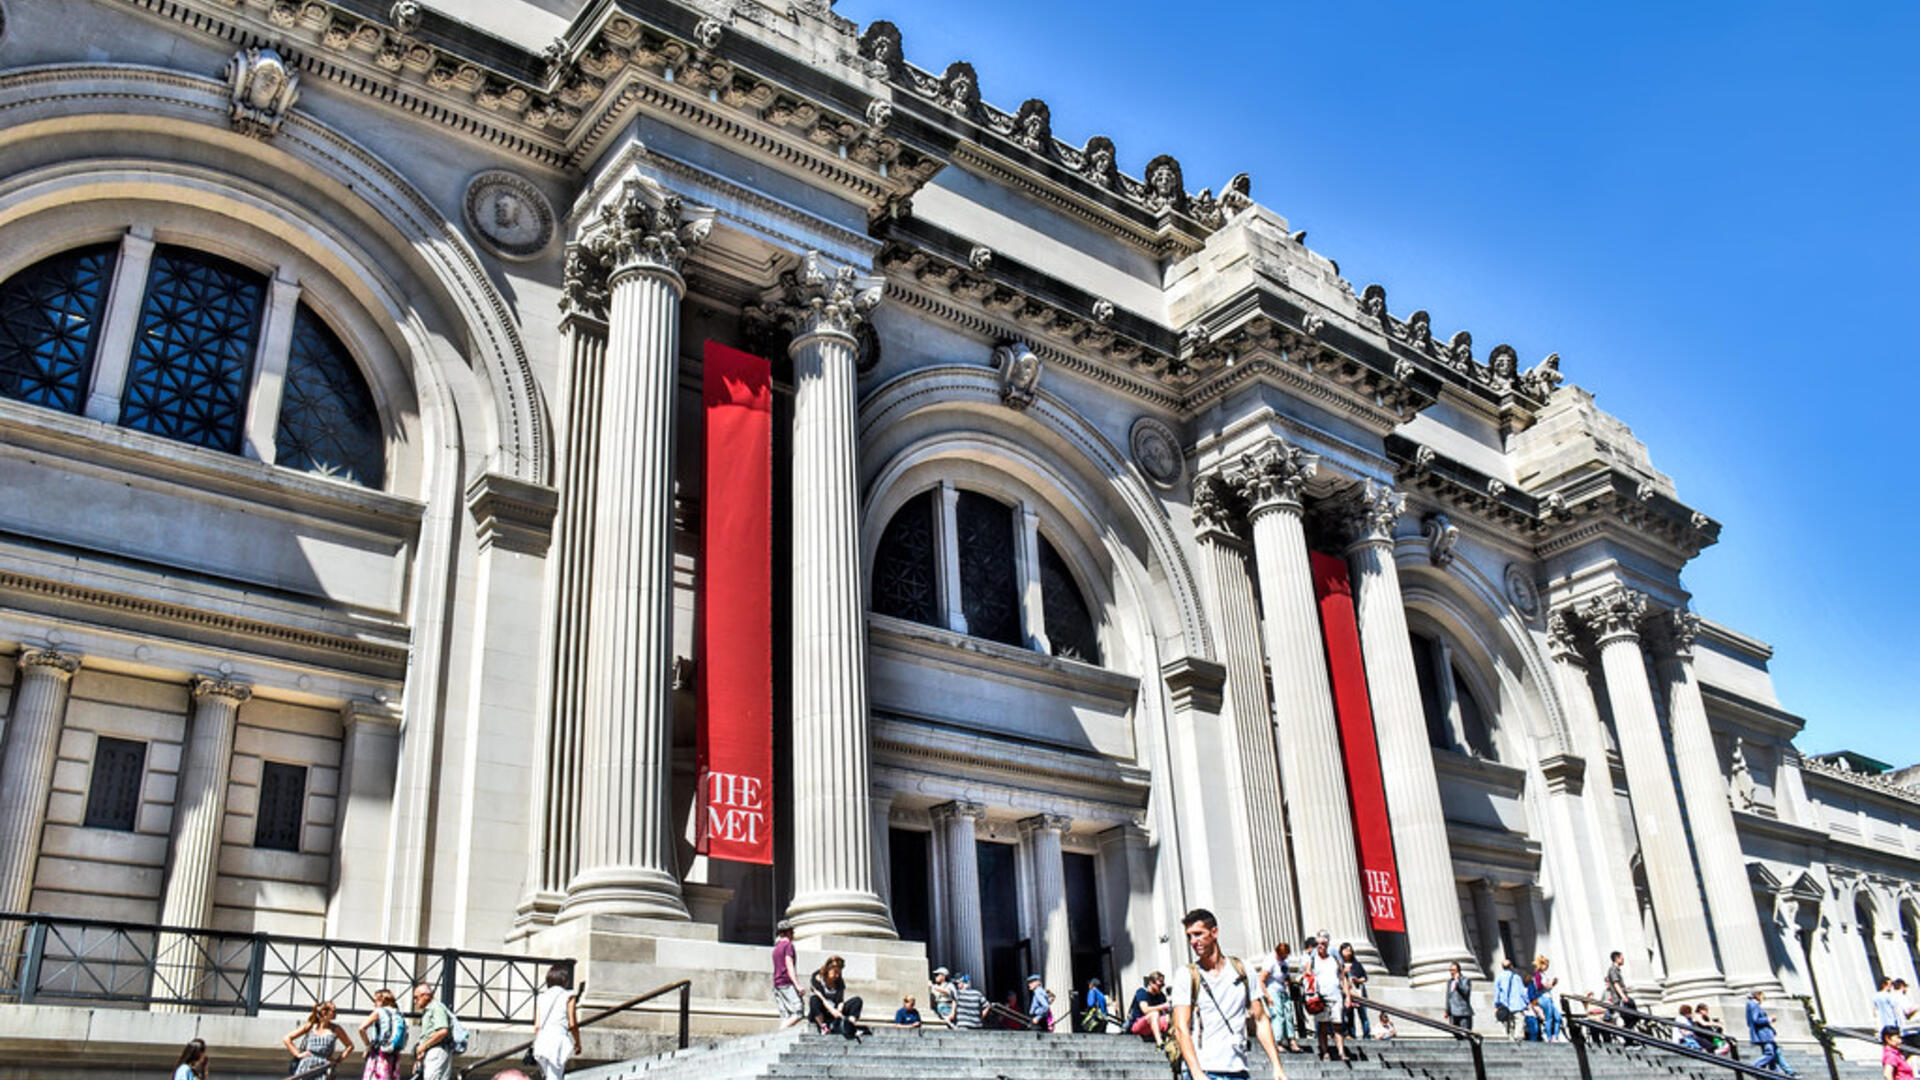 """The Metropolitan Museum of Art - NYC"" by S©'rates is licensed under CC BY-NC-SA 2.0"